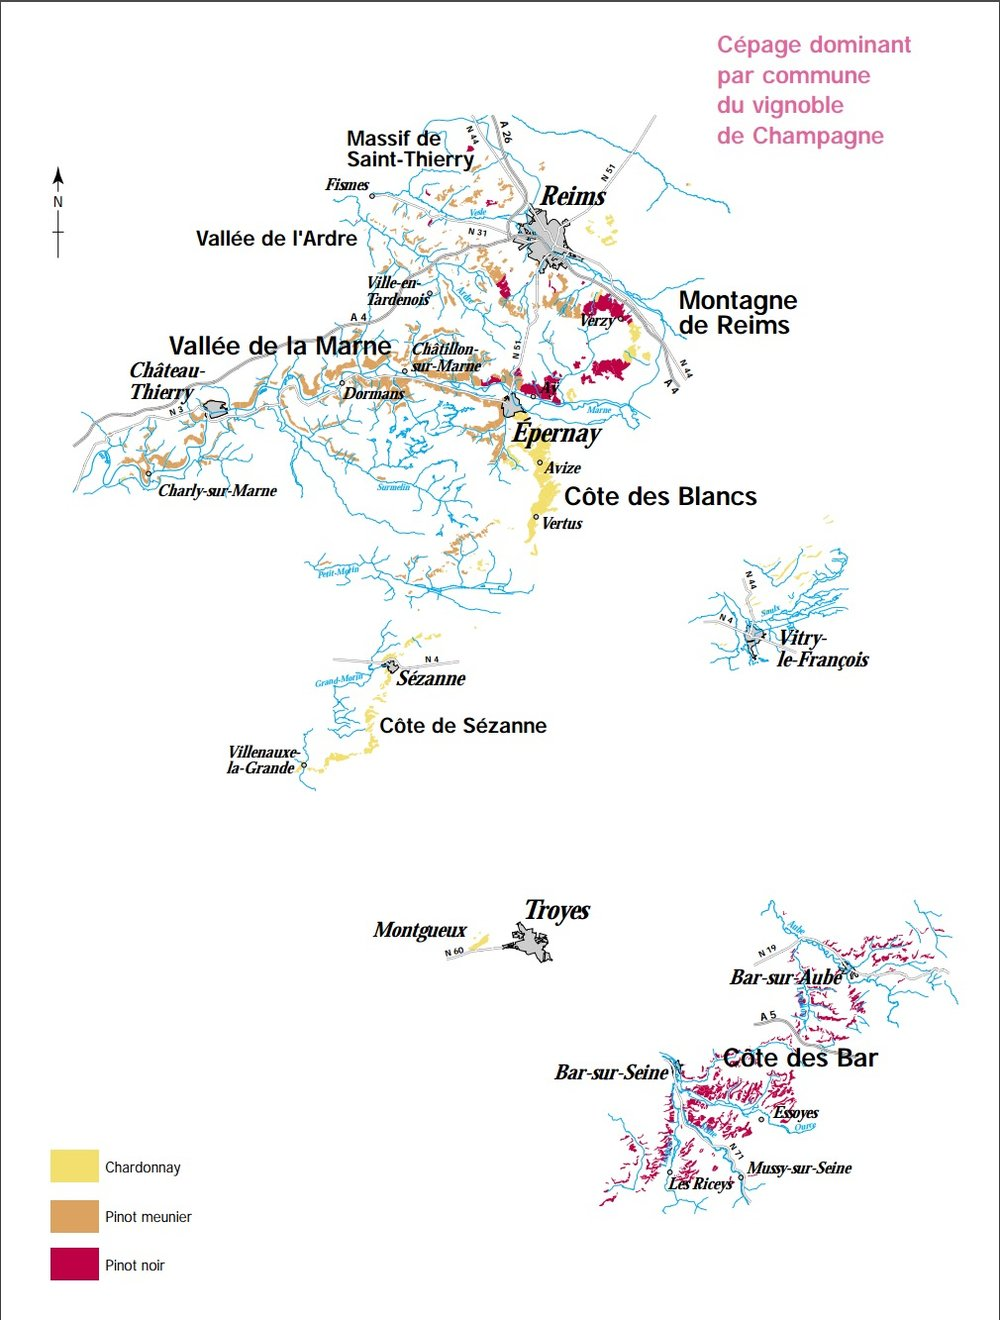 Maps of Champagne by grape plantings, 20 subregions and more ...